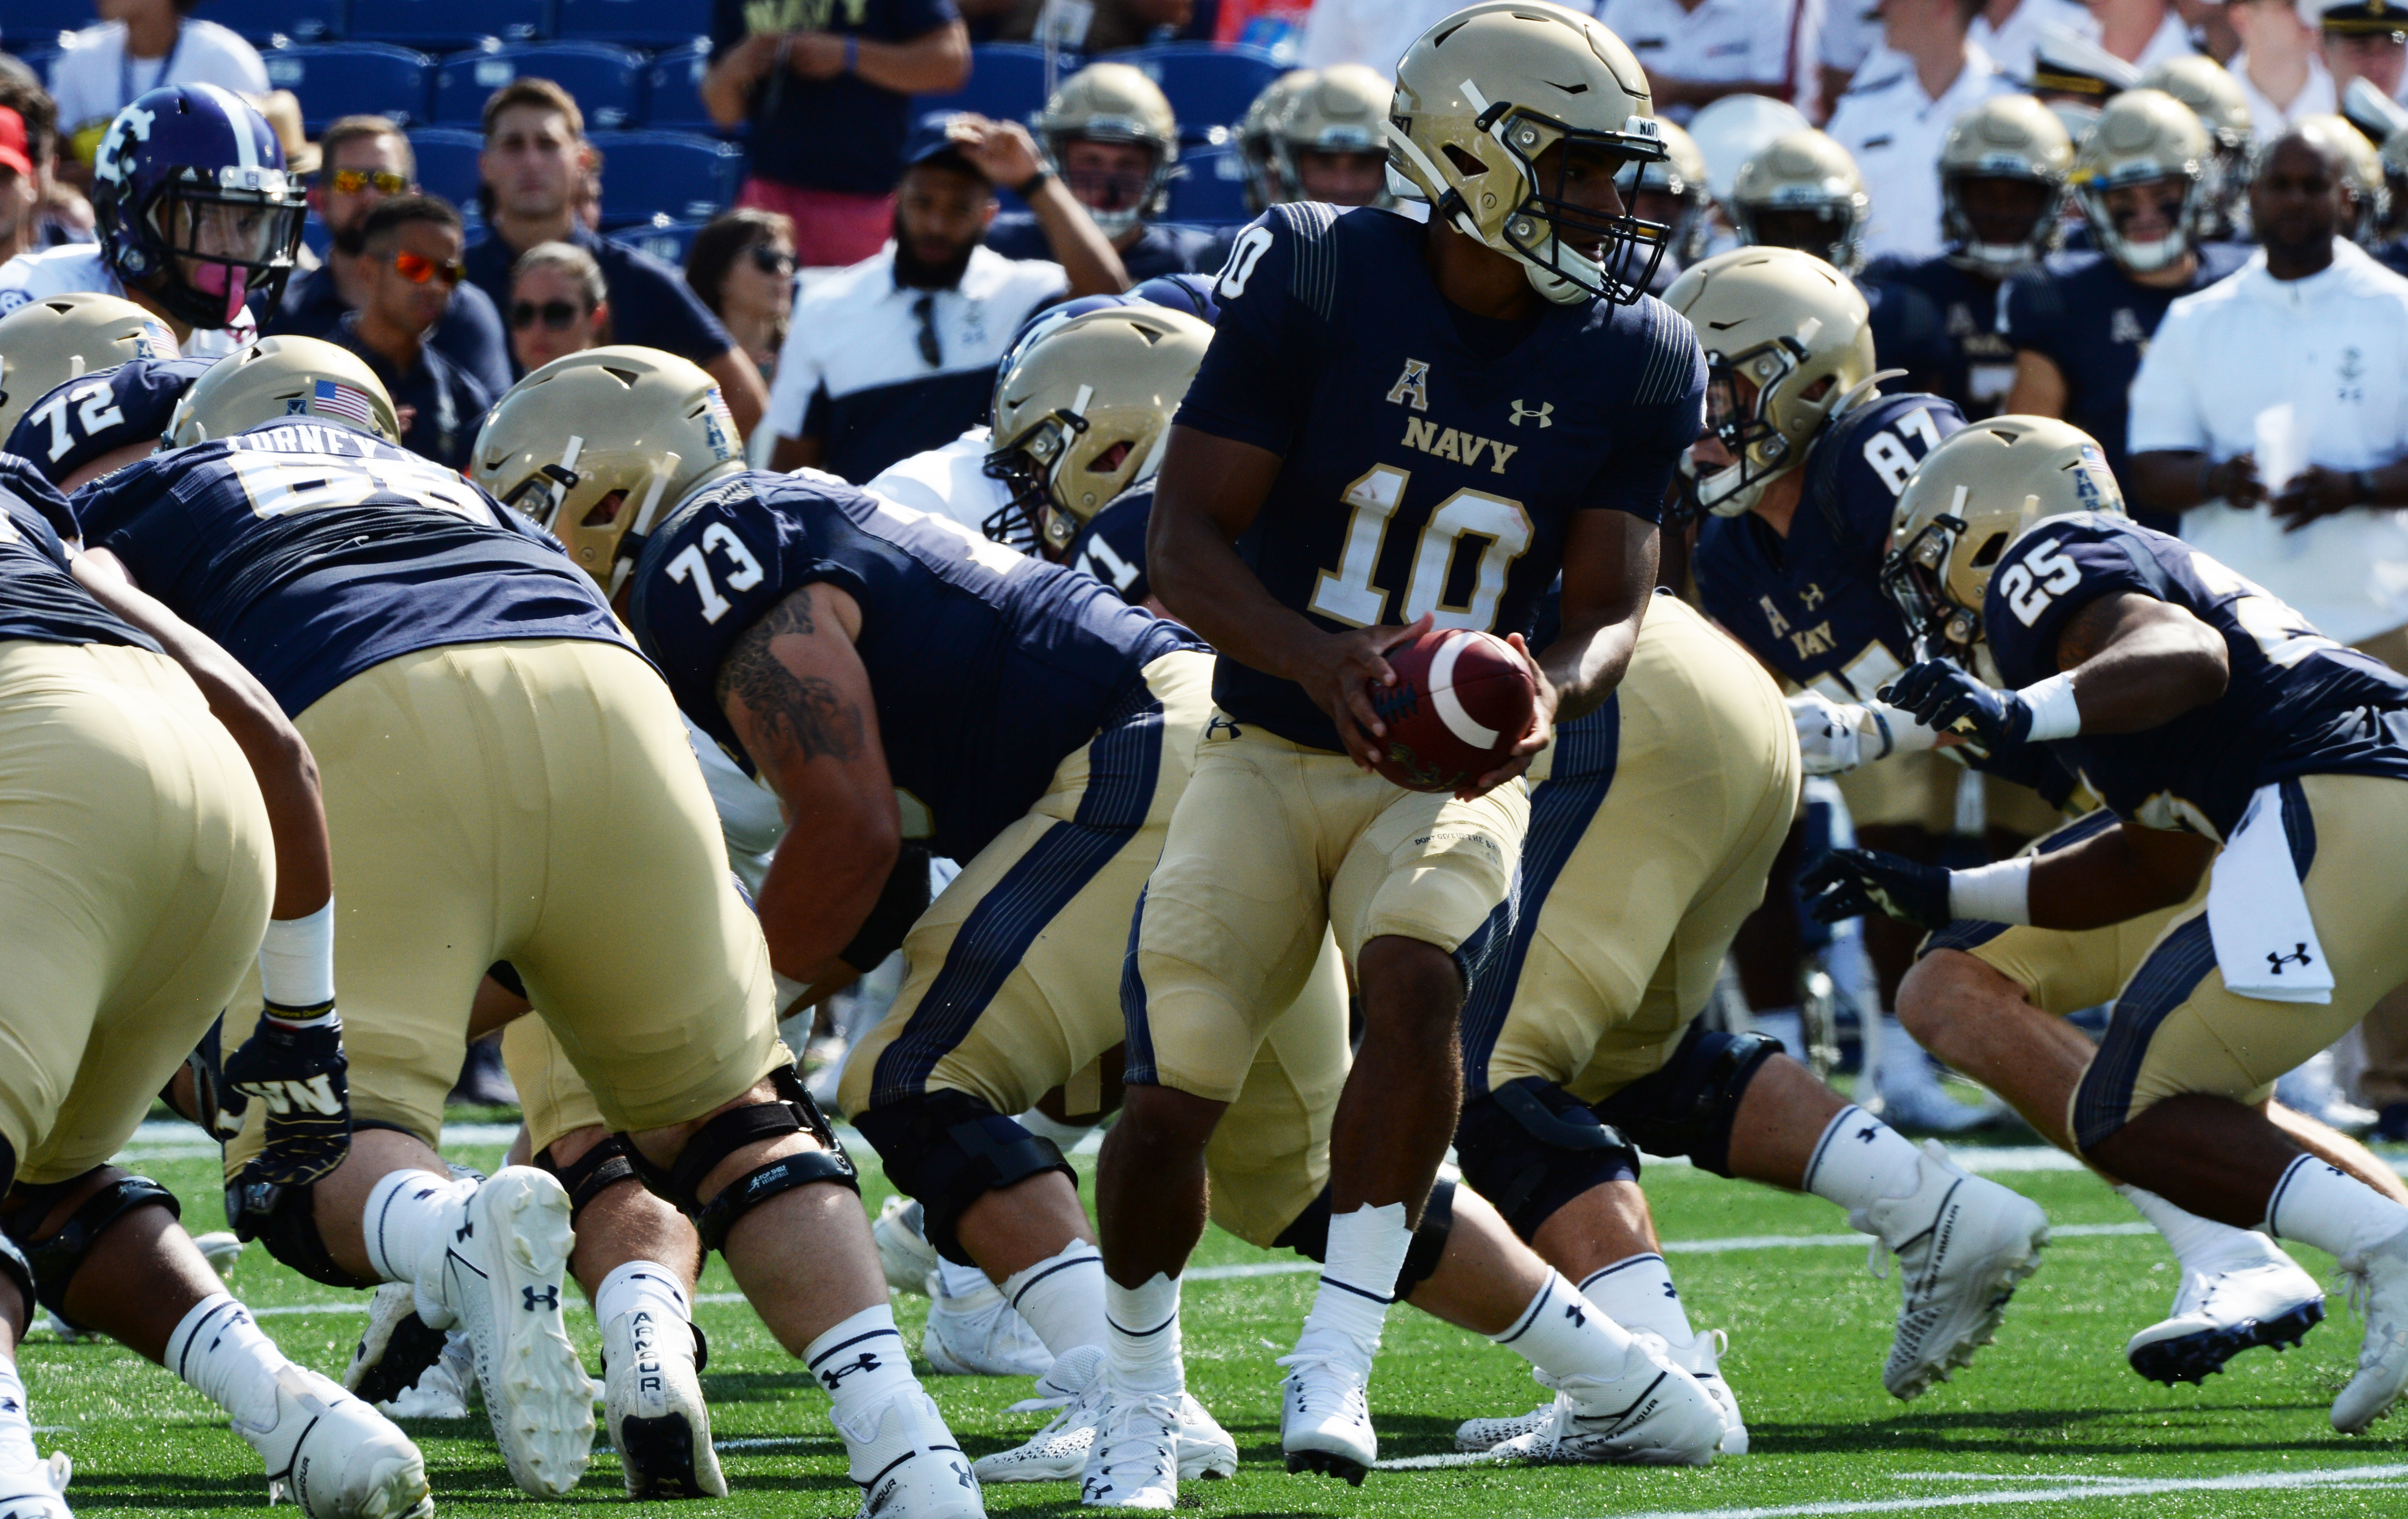 Midshipman Continue to Roll, Crushing South Florida